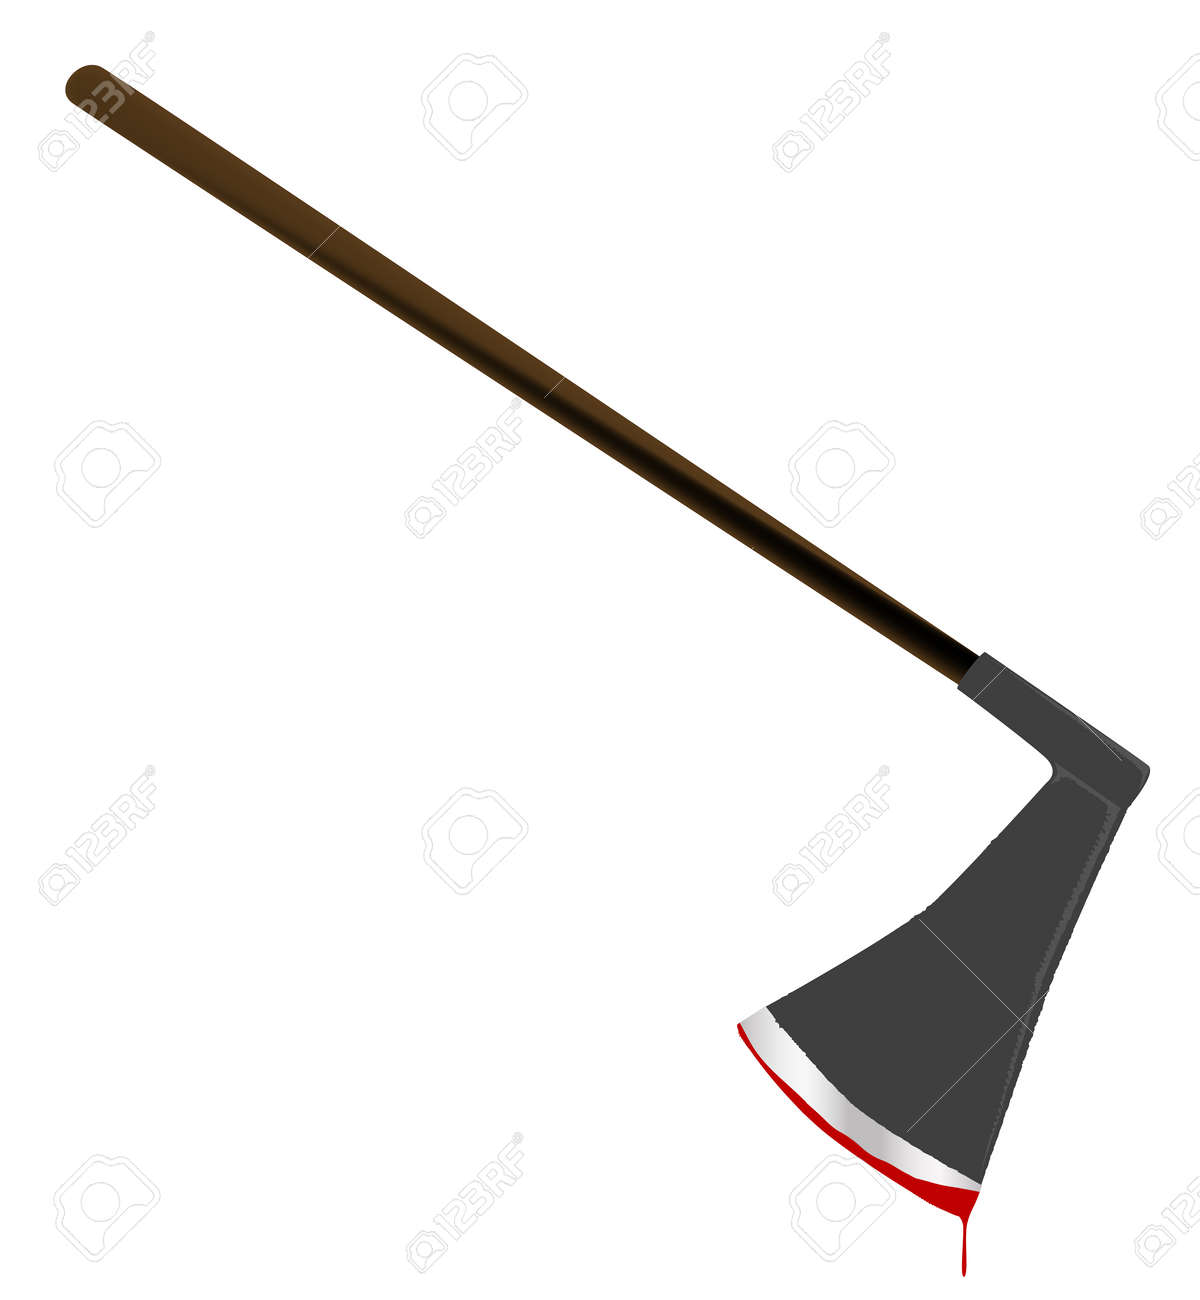 A medievil style executioners axe with blood isolated on a white background - 73557511